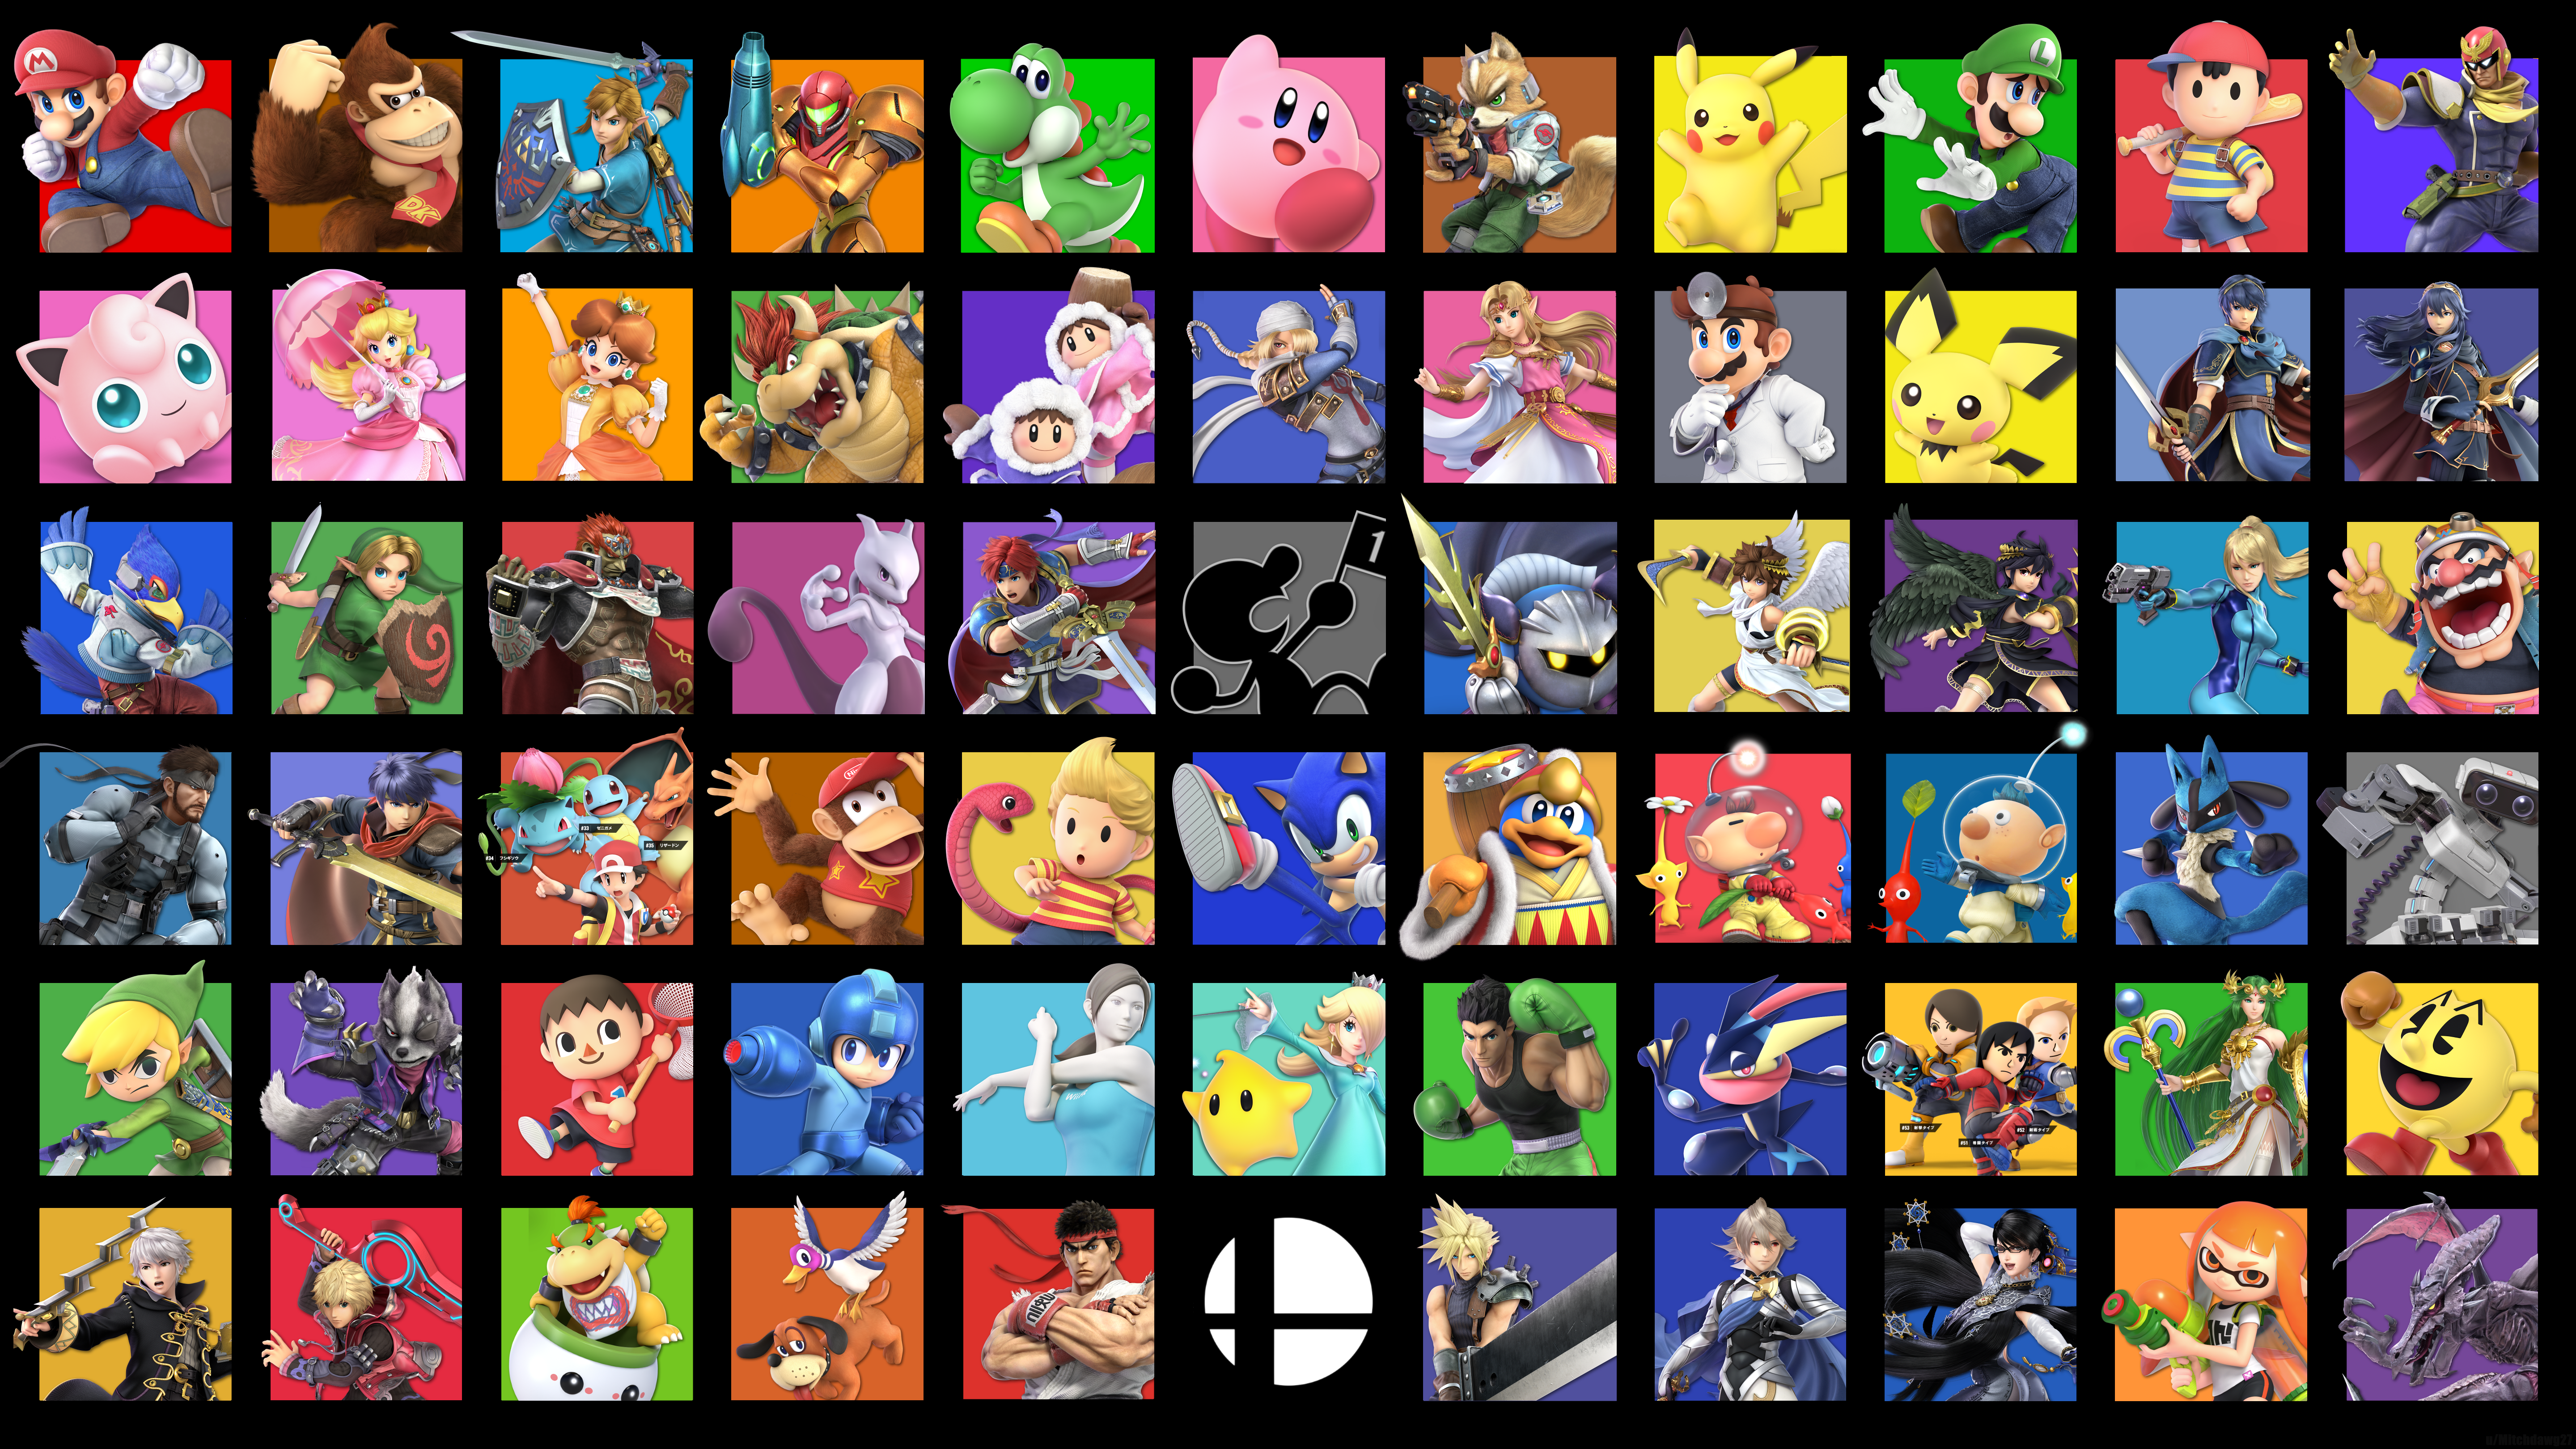 Super Smash Bros Ultimate Roster Wallpaper 5k Retina Ultra Hd